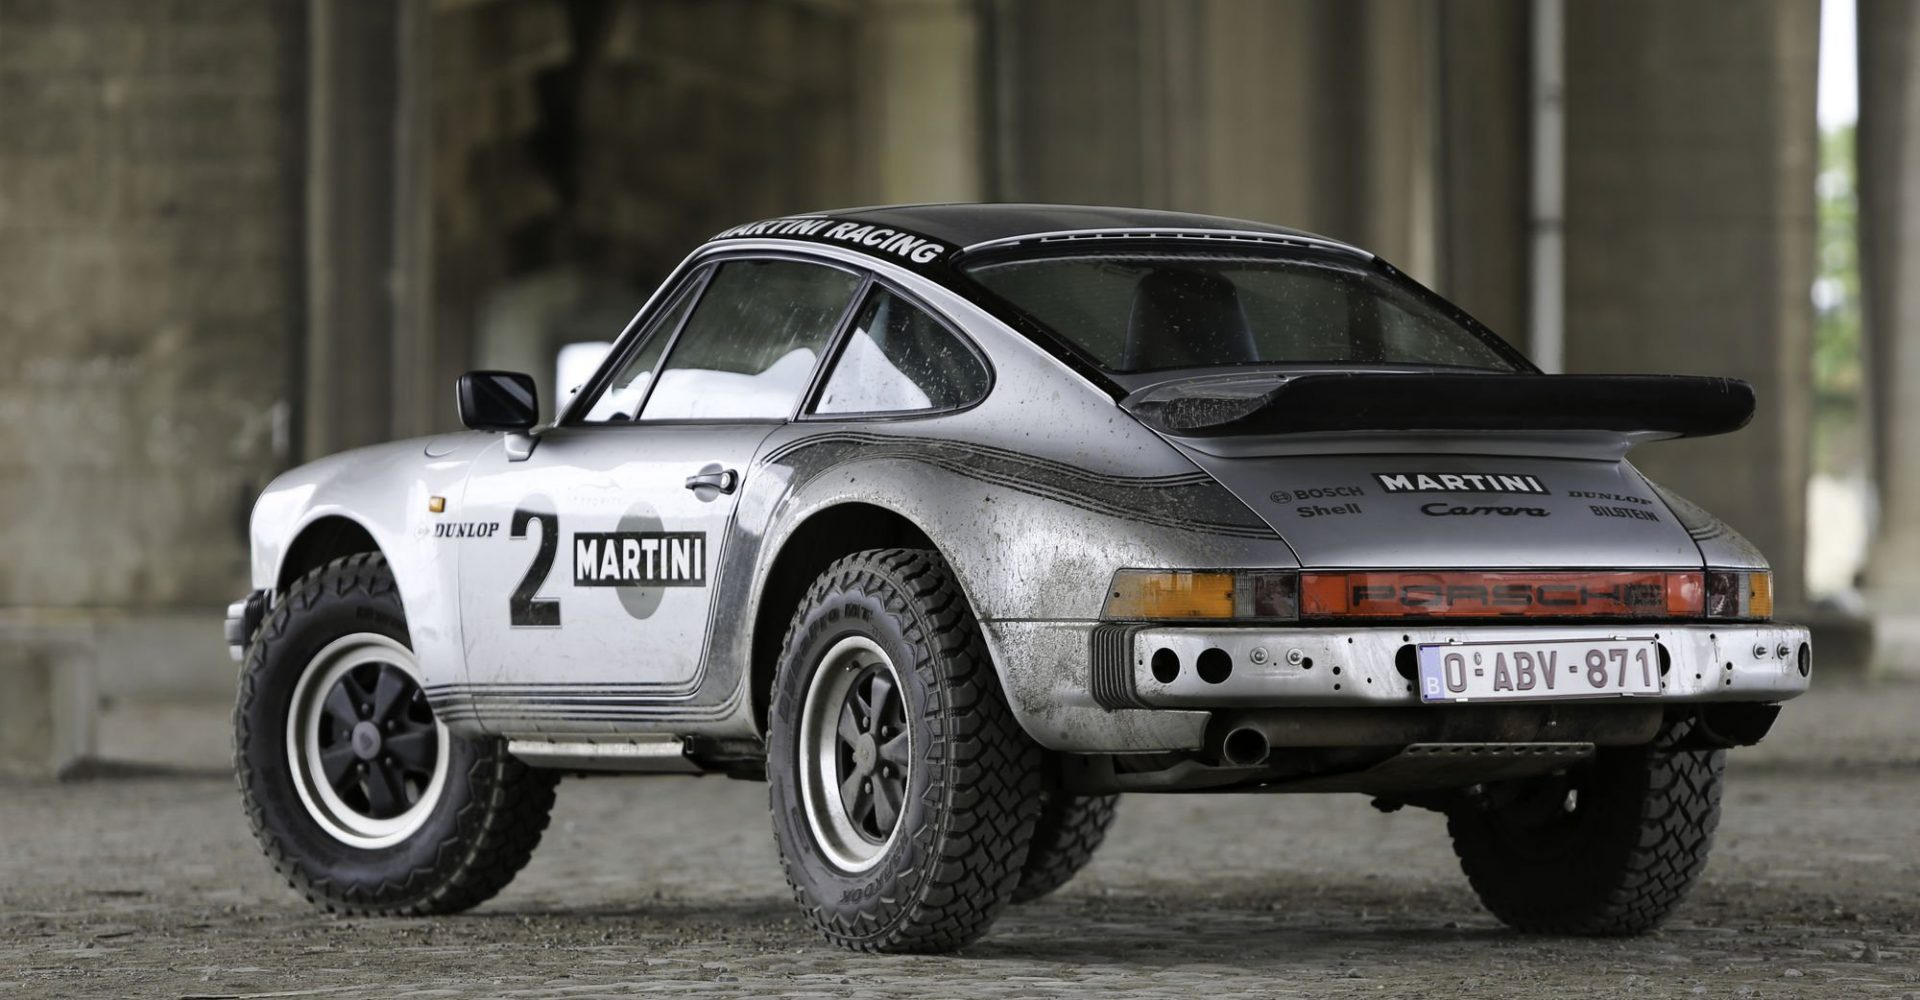 Rare Porsche 911 Safari replica goes up for sale and it's awesome